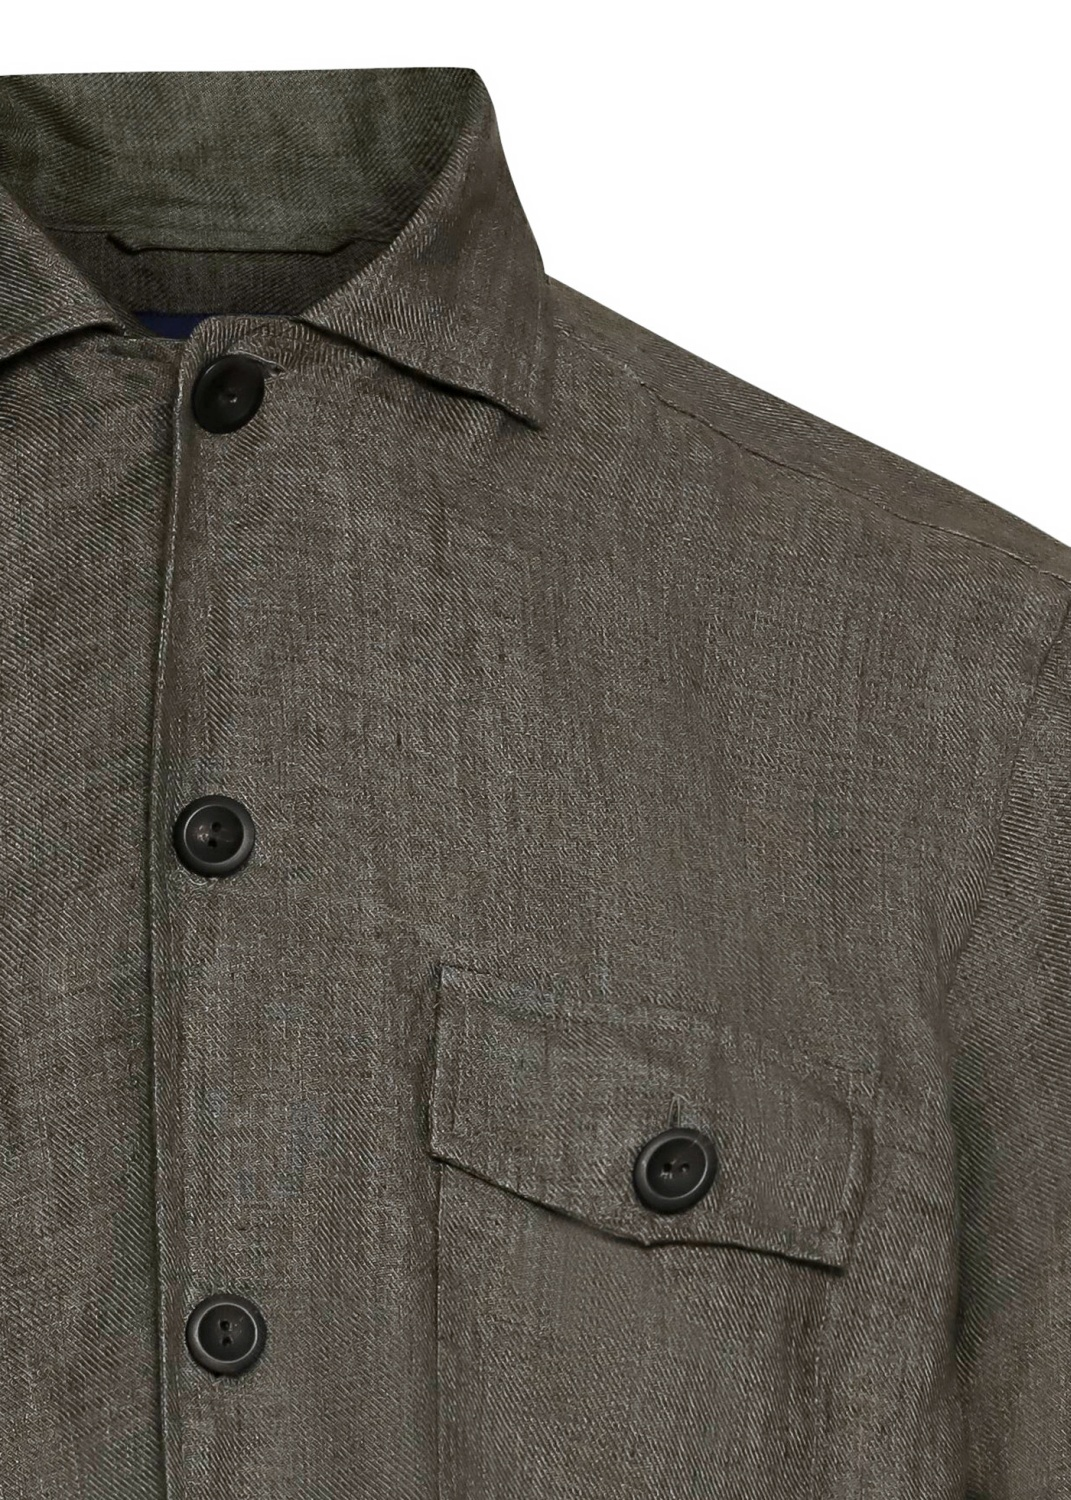 1000020886809 Men shirt: Casual / Linen Twill image number 2